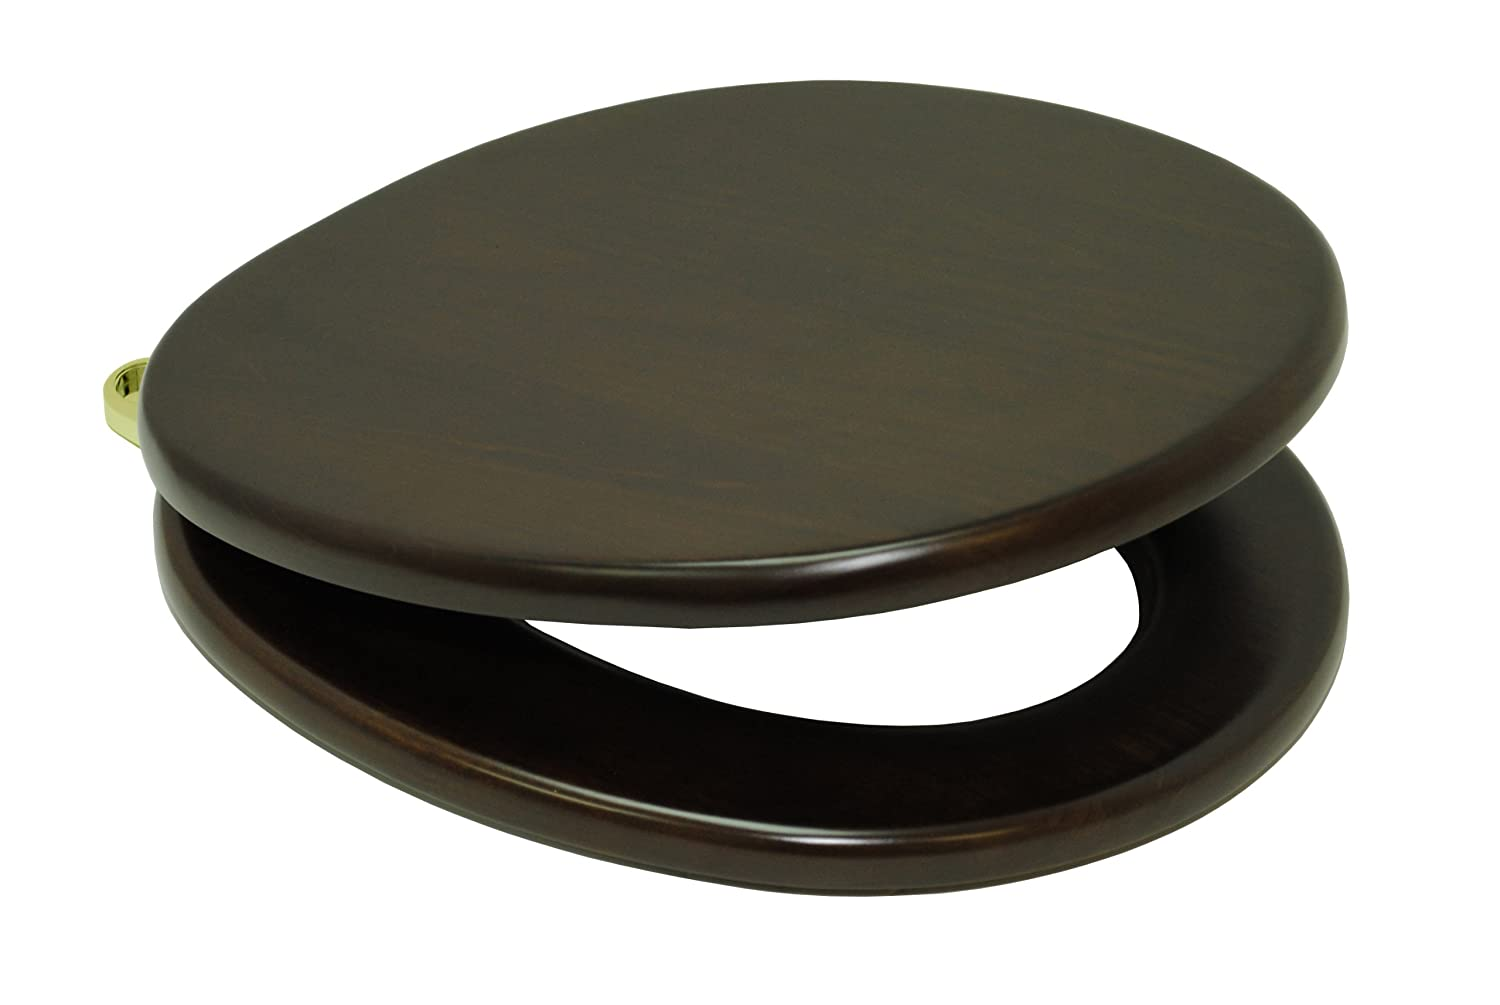 TOTO SS303#PB Wood SoftClose Round Toilet Seat, Polished Brass      Amazon.com